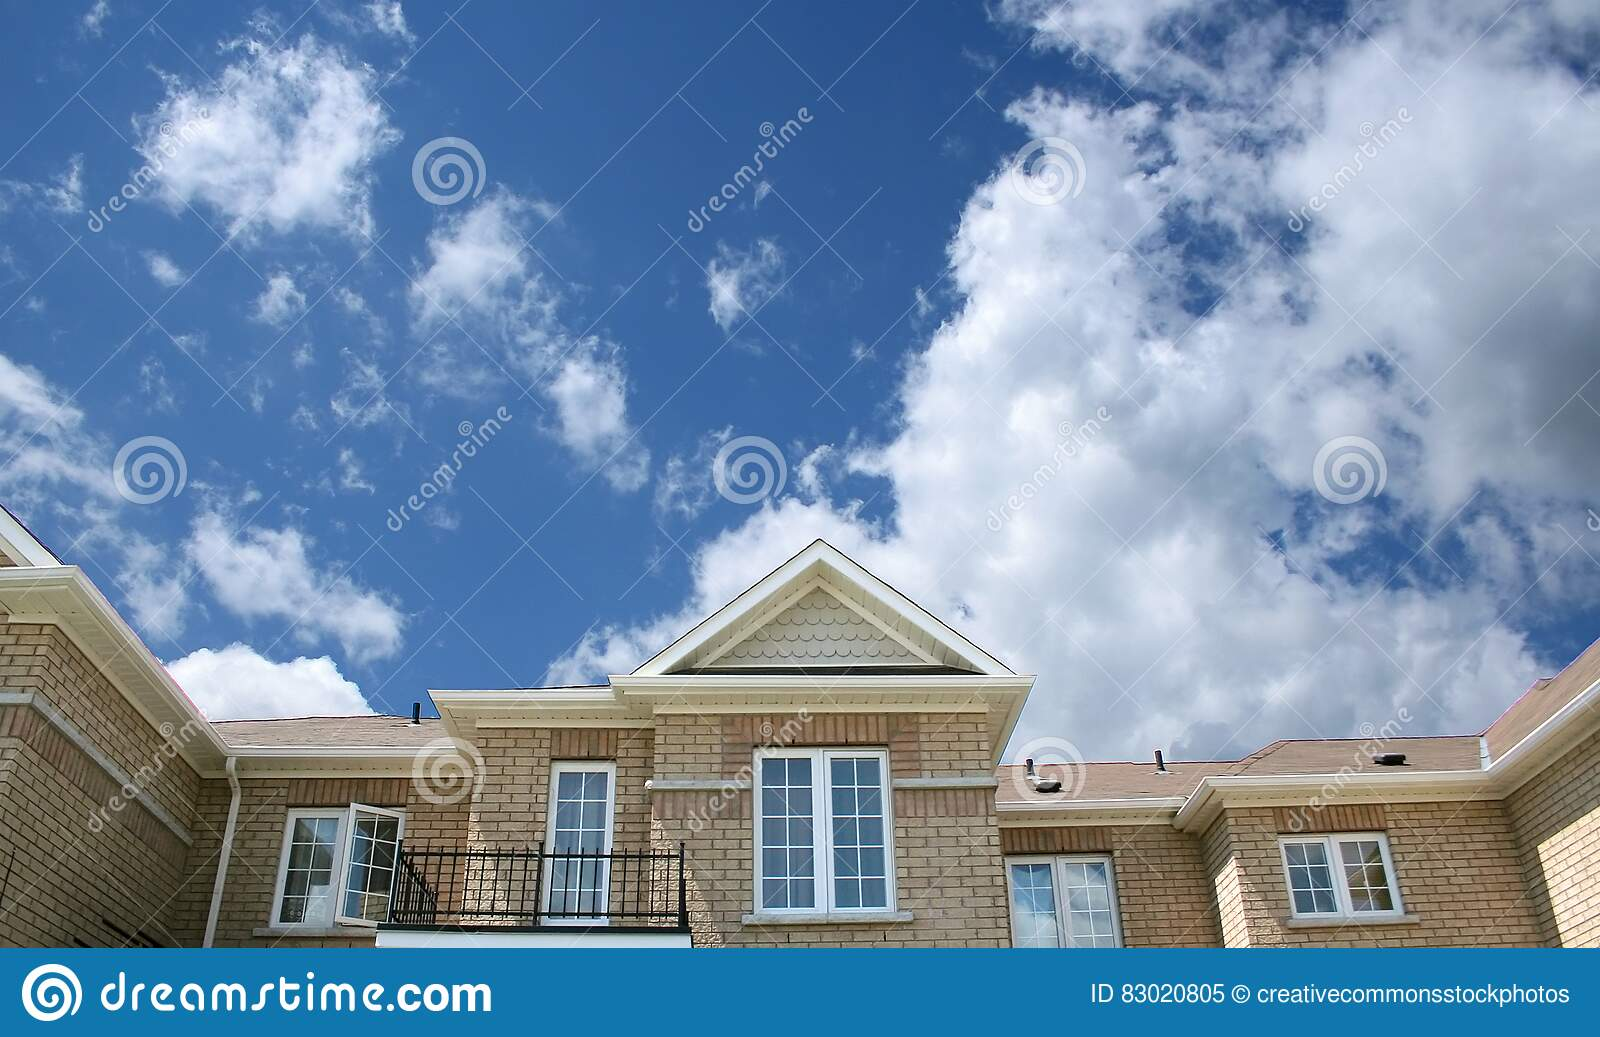 Download Brown Bricked House Under Cloudy Skies Stock Image - Image of building, free: 83020805